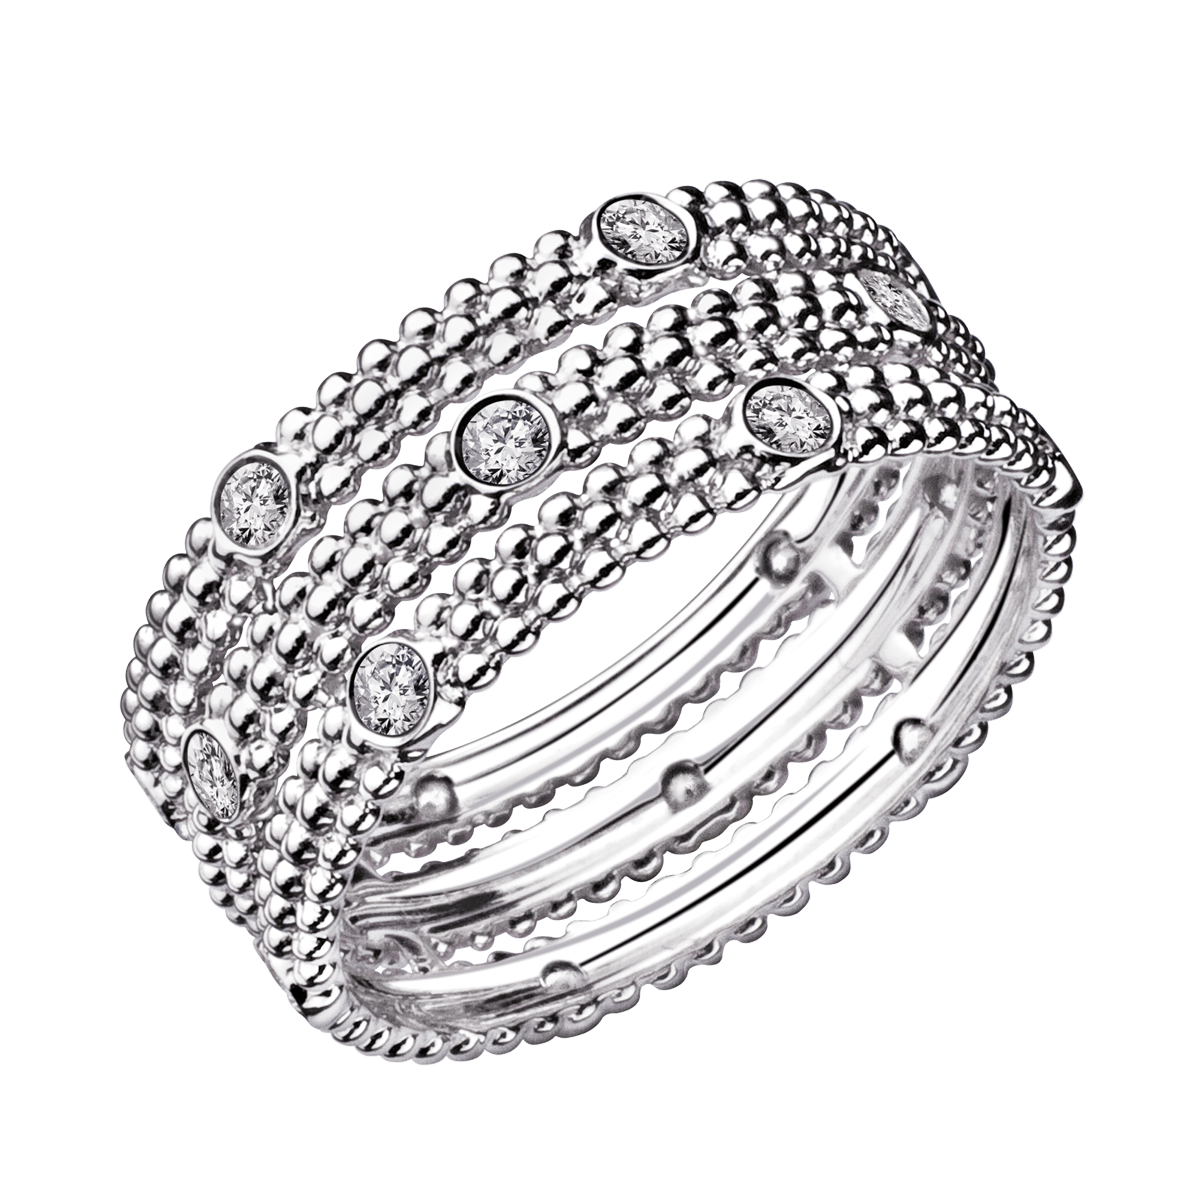 Favori Bague Le Premier Jour, or blanc, diamants - Mauboussin AQ88